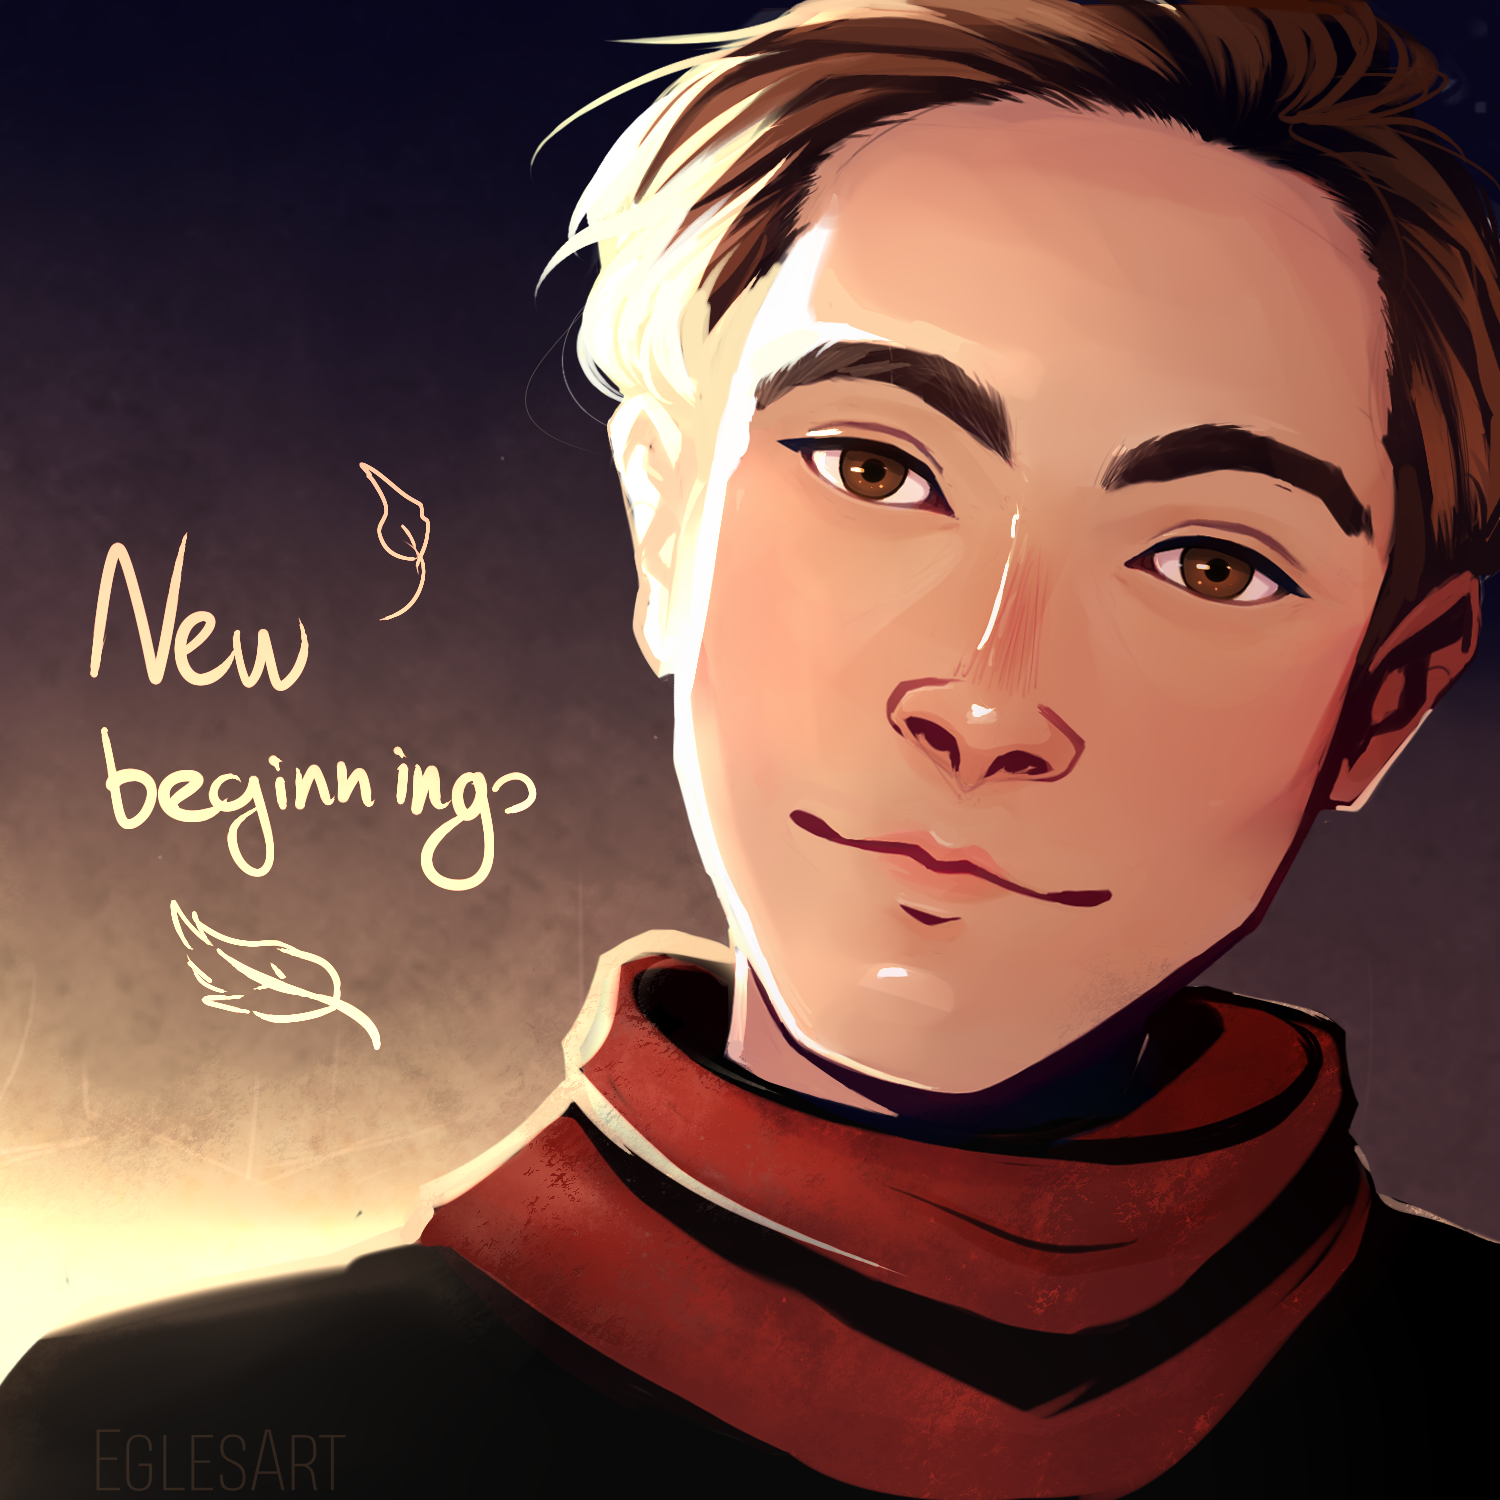 New beginnings, a drawing by Eggylyte